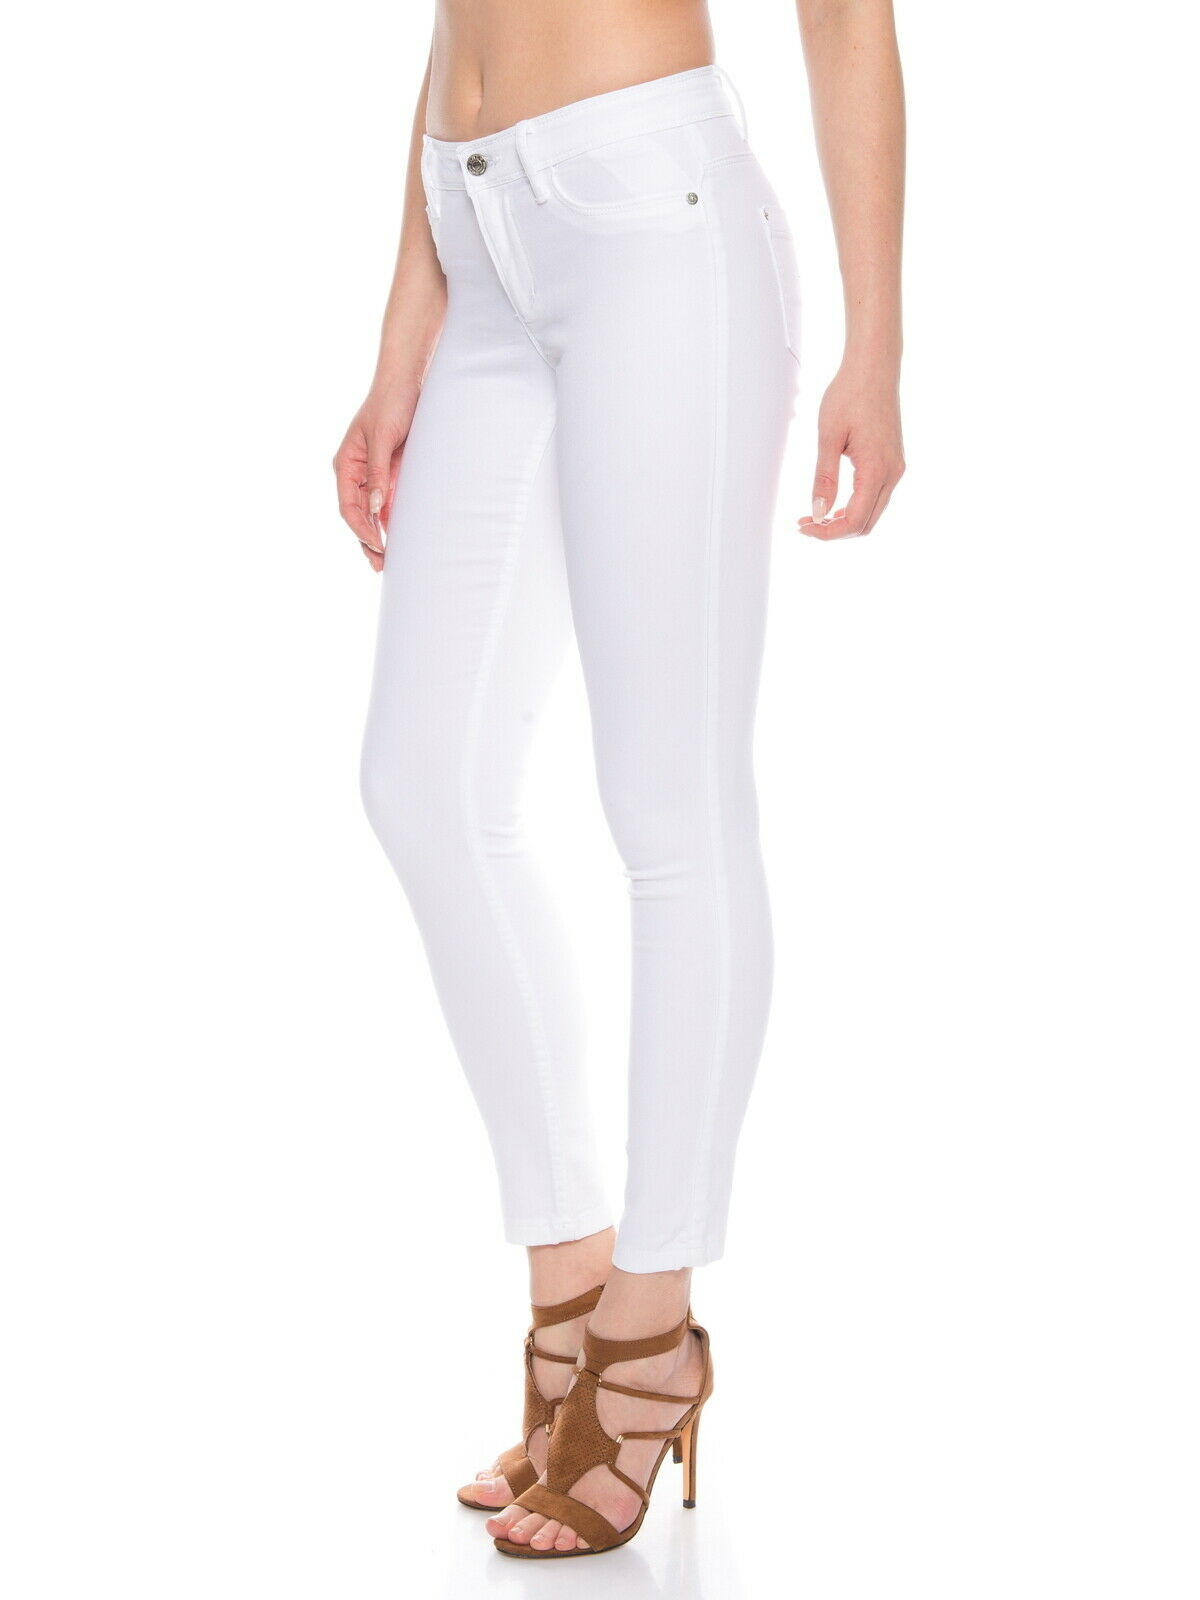 Only-Damen-Skinny-Jeans-Hose-mit-Stretch-in-weiss-Regulare